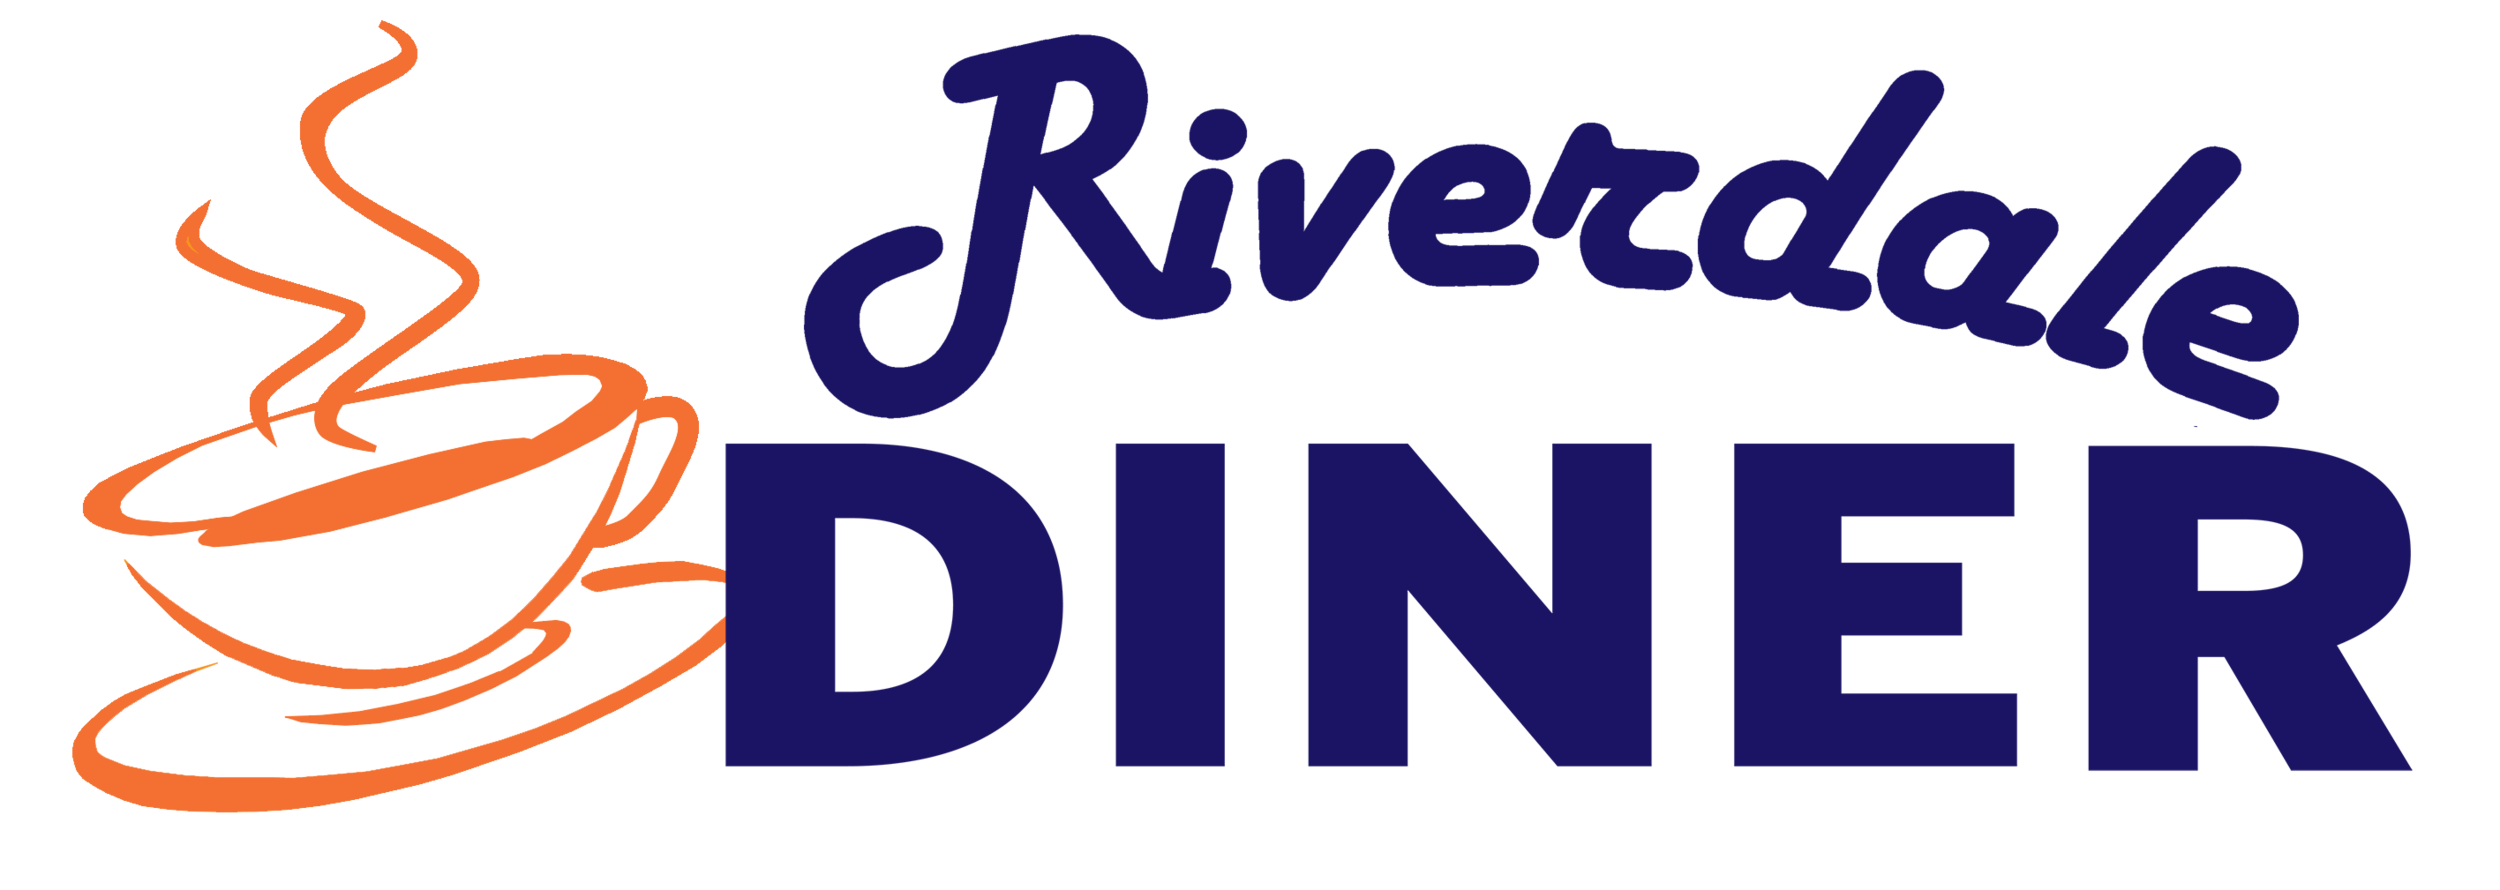 Rivedale logo_blue.png